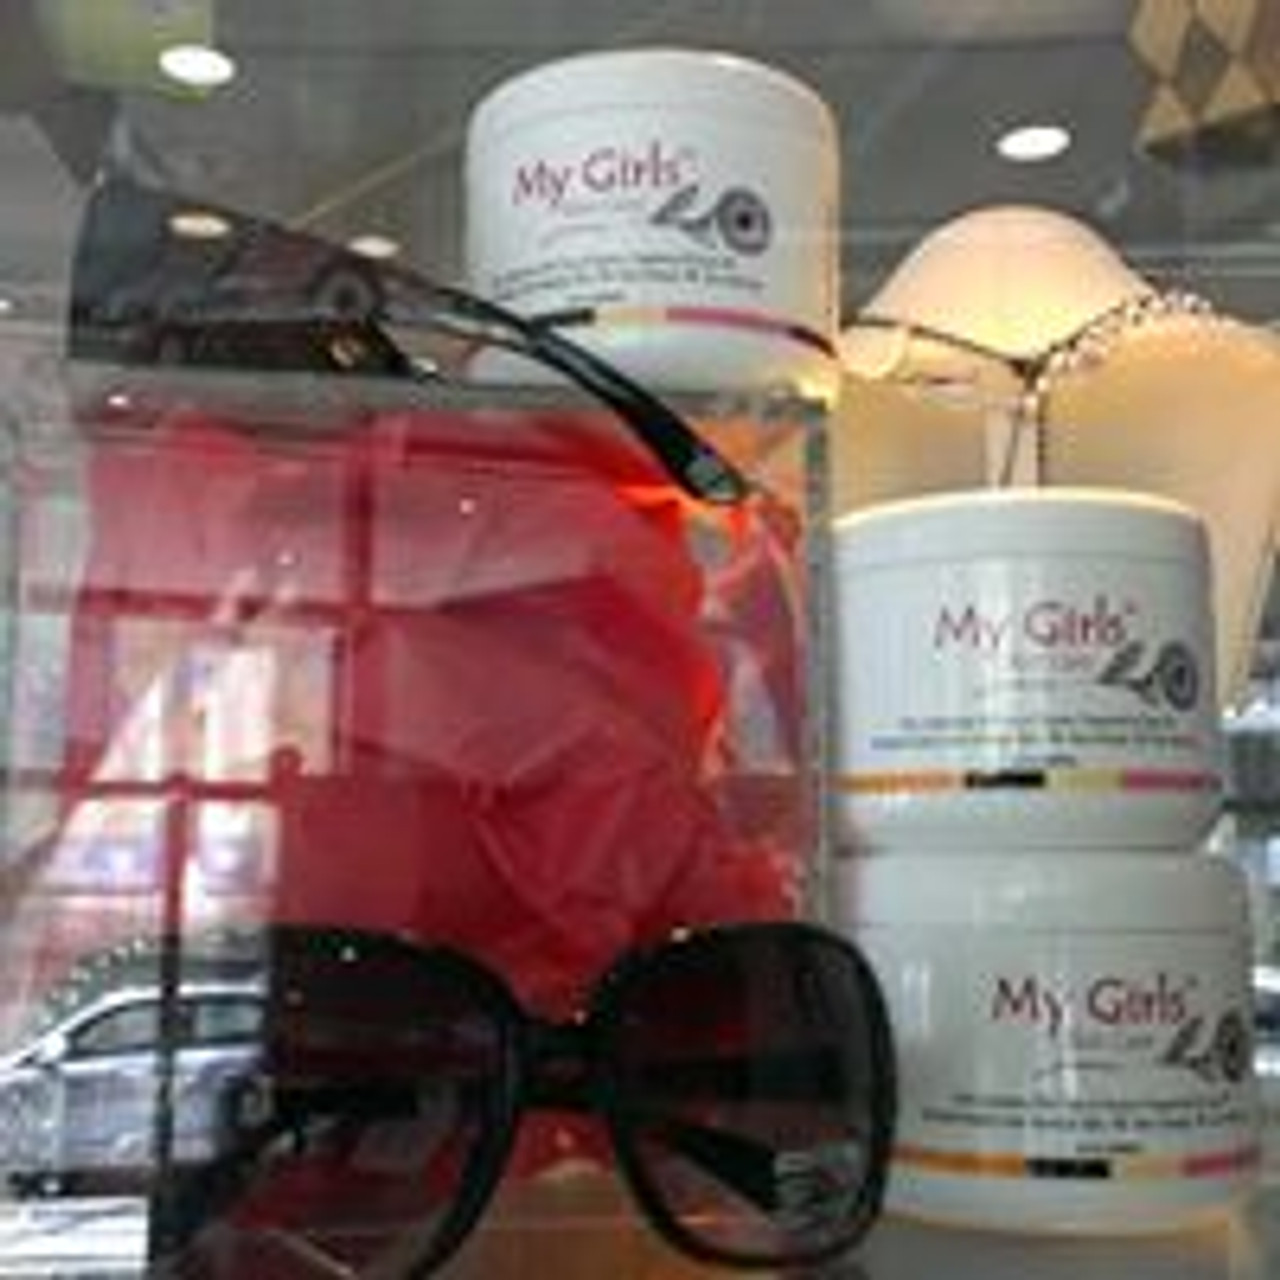 Find A My Girls Retailer